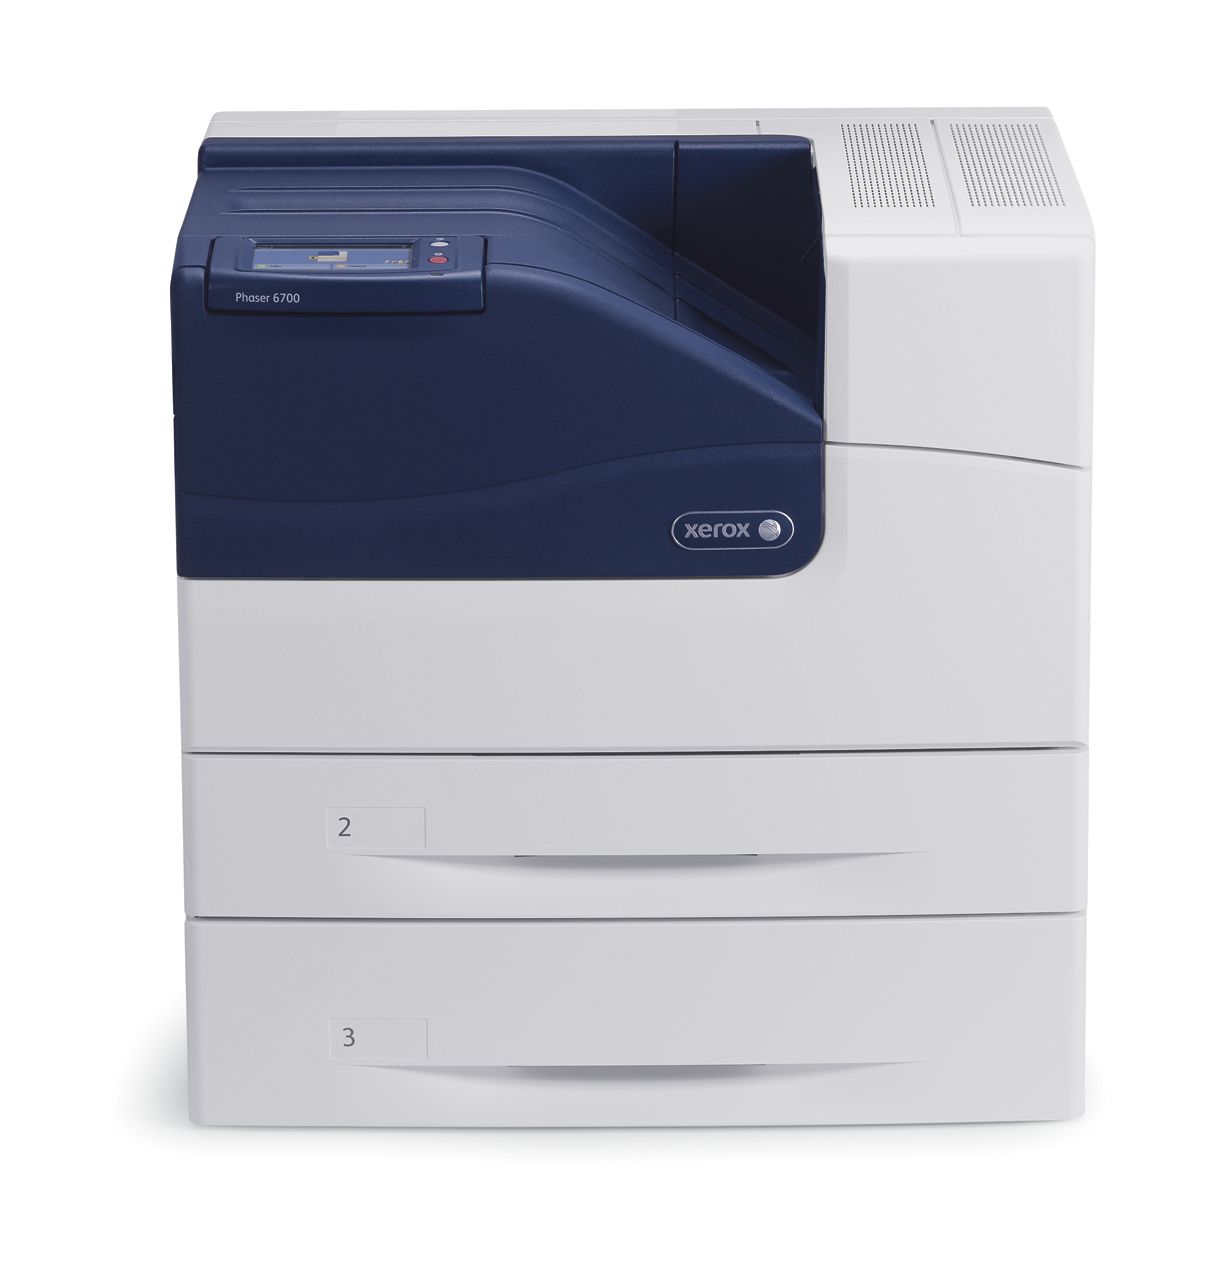 6700V_DT Xerox Phaser 6700DT Colour Laser Printer - Refurbished